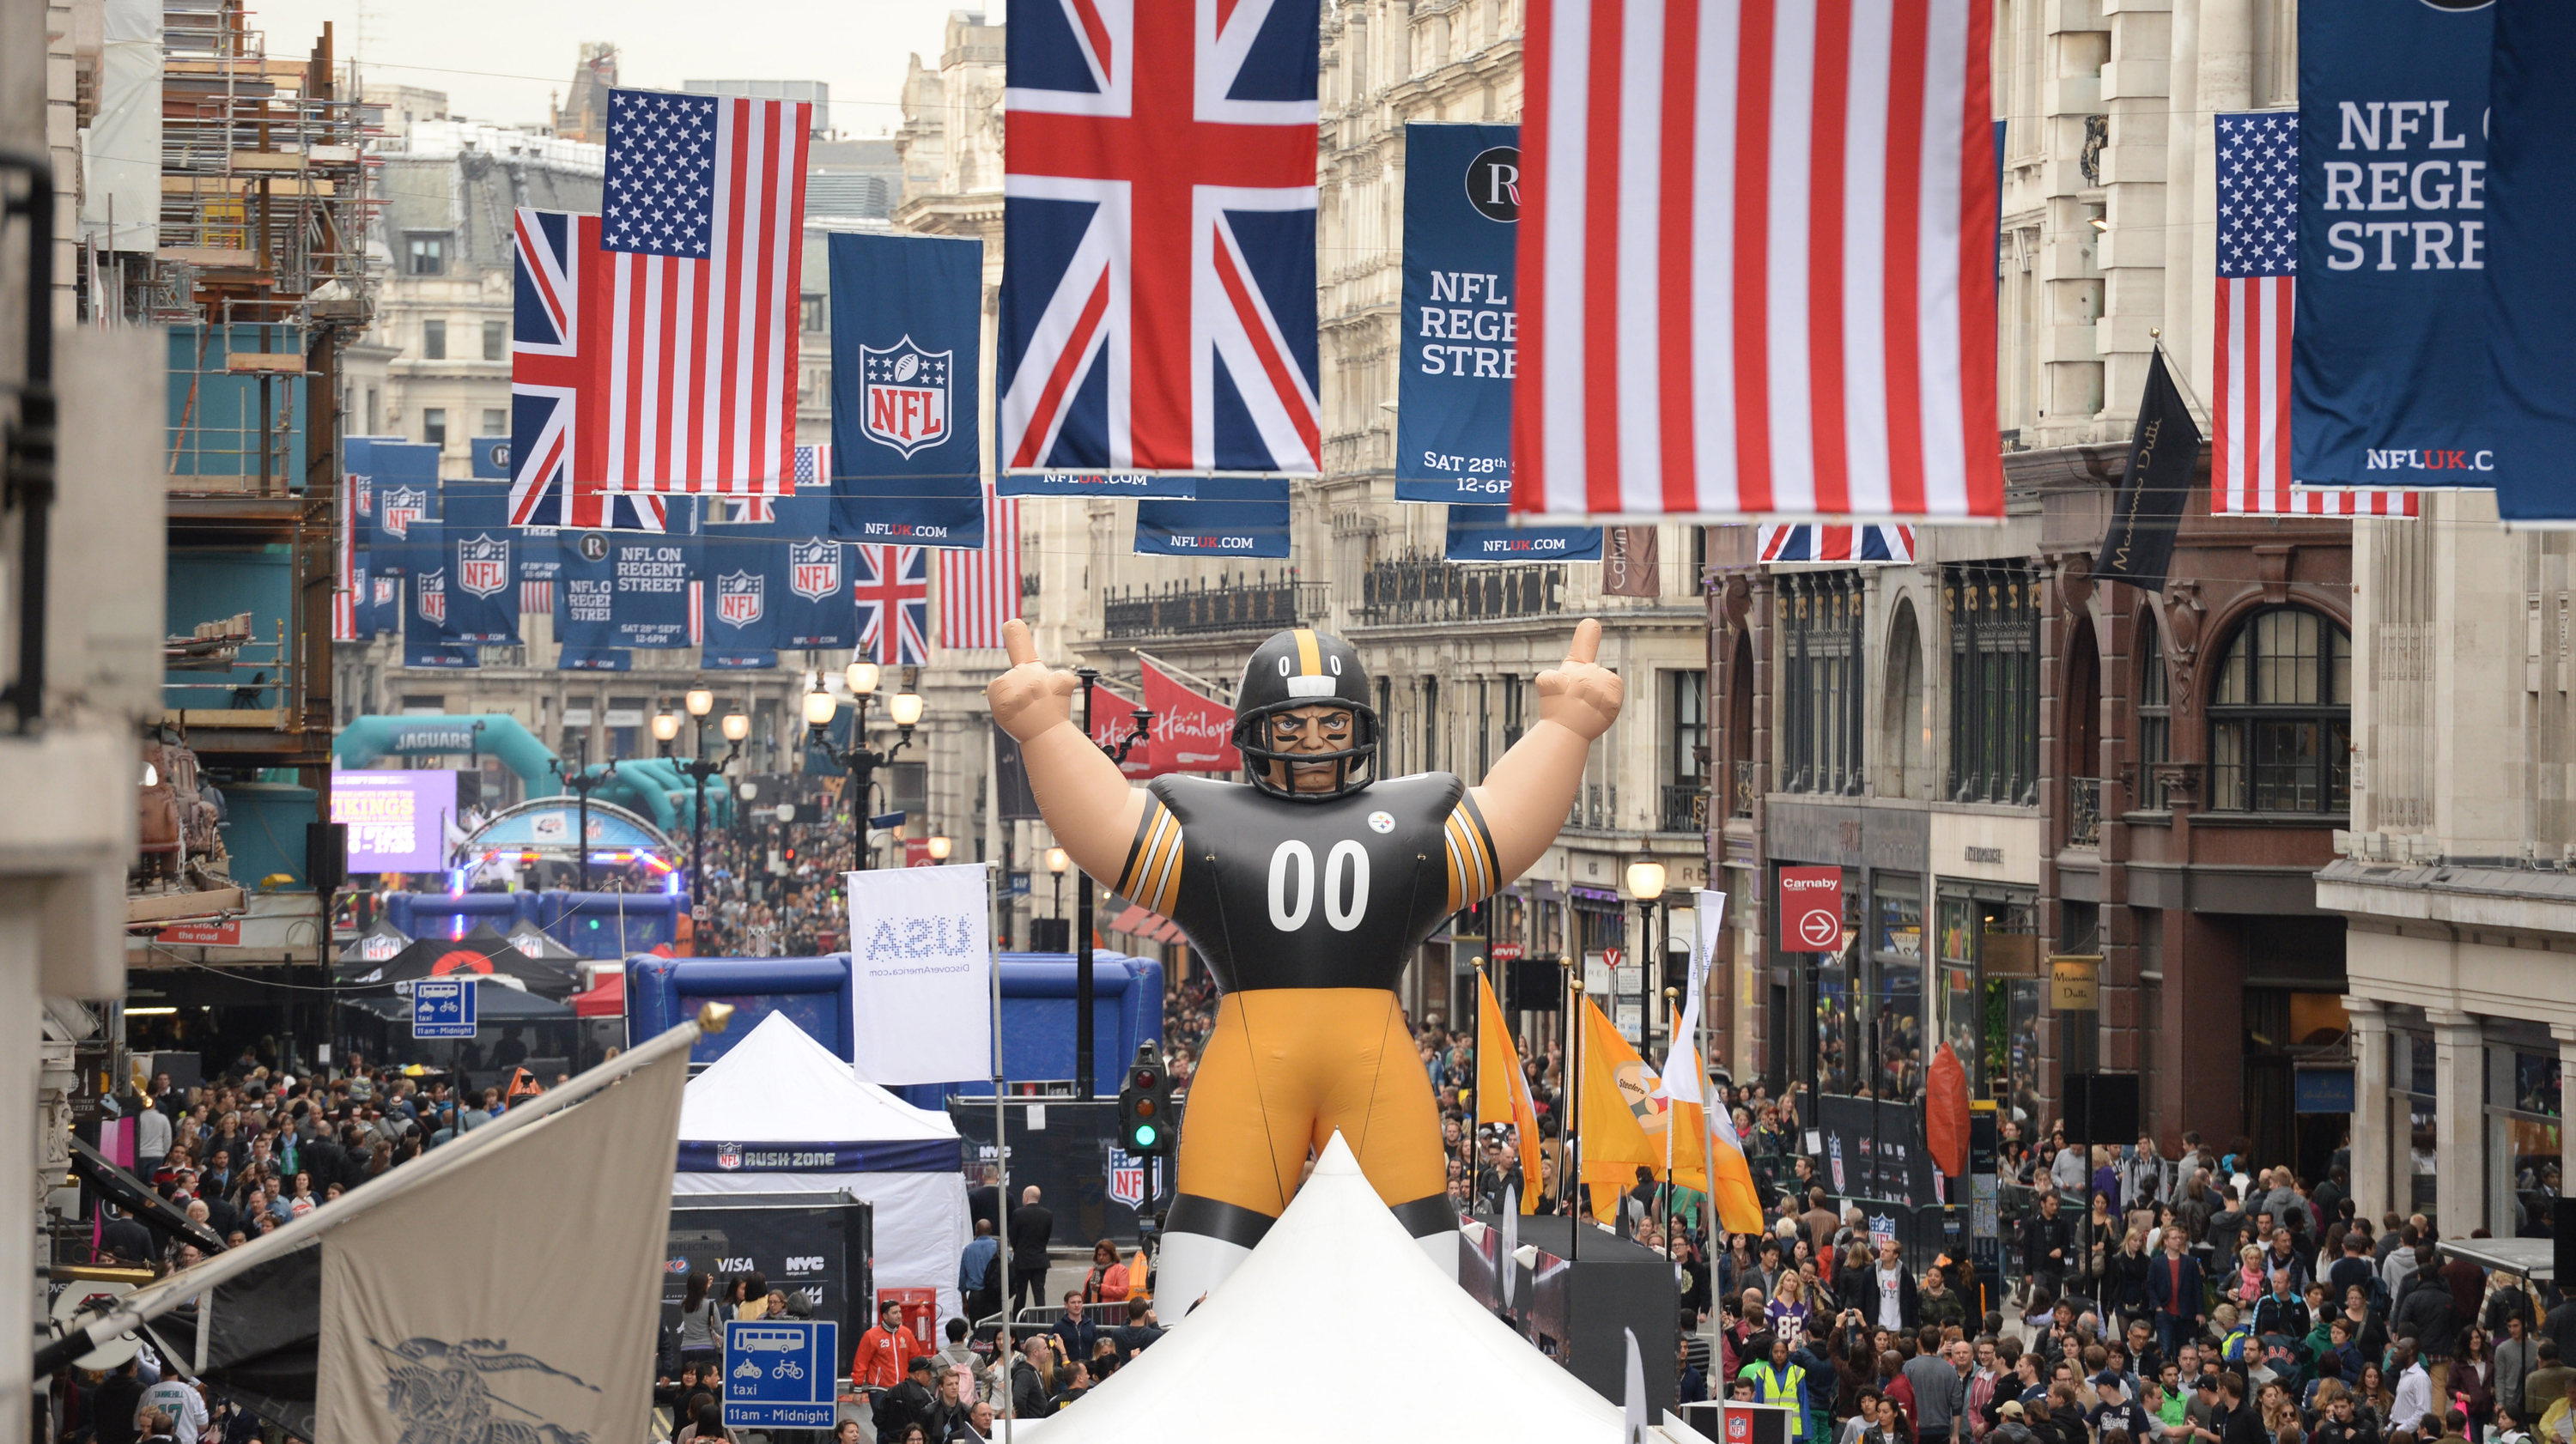 Bars to watch the Super Bowl in London